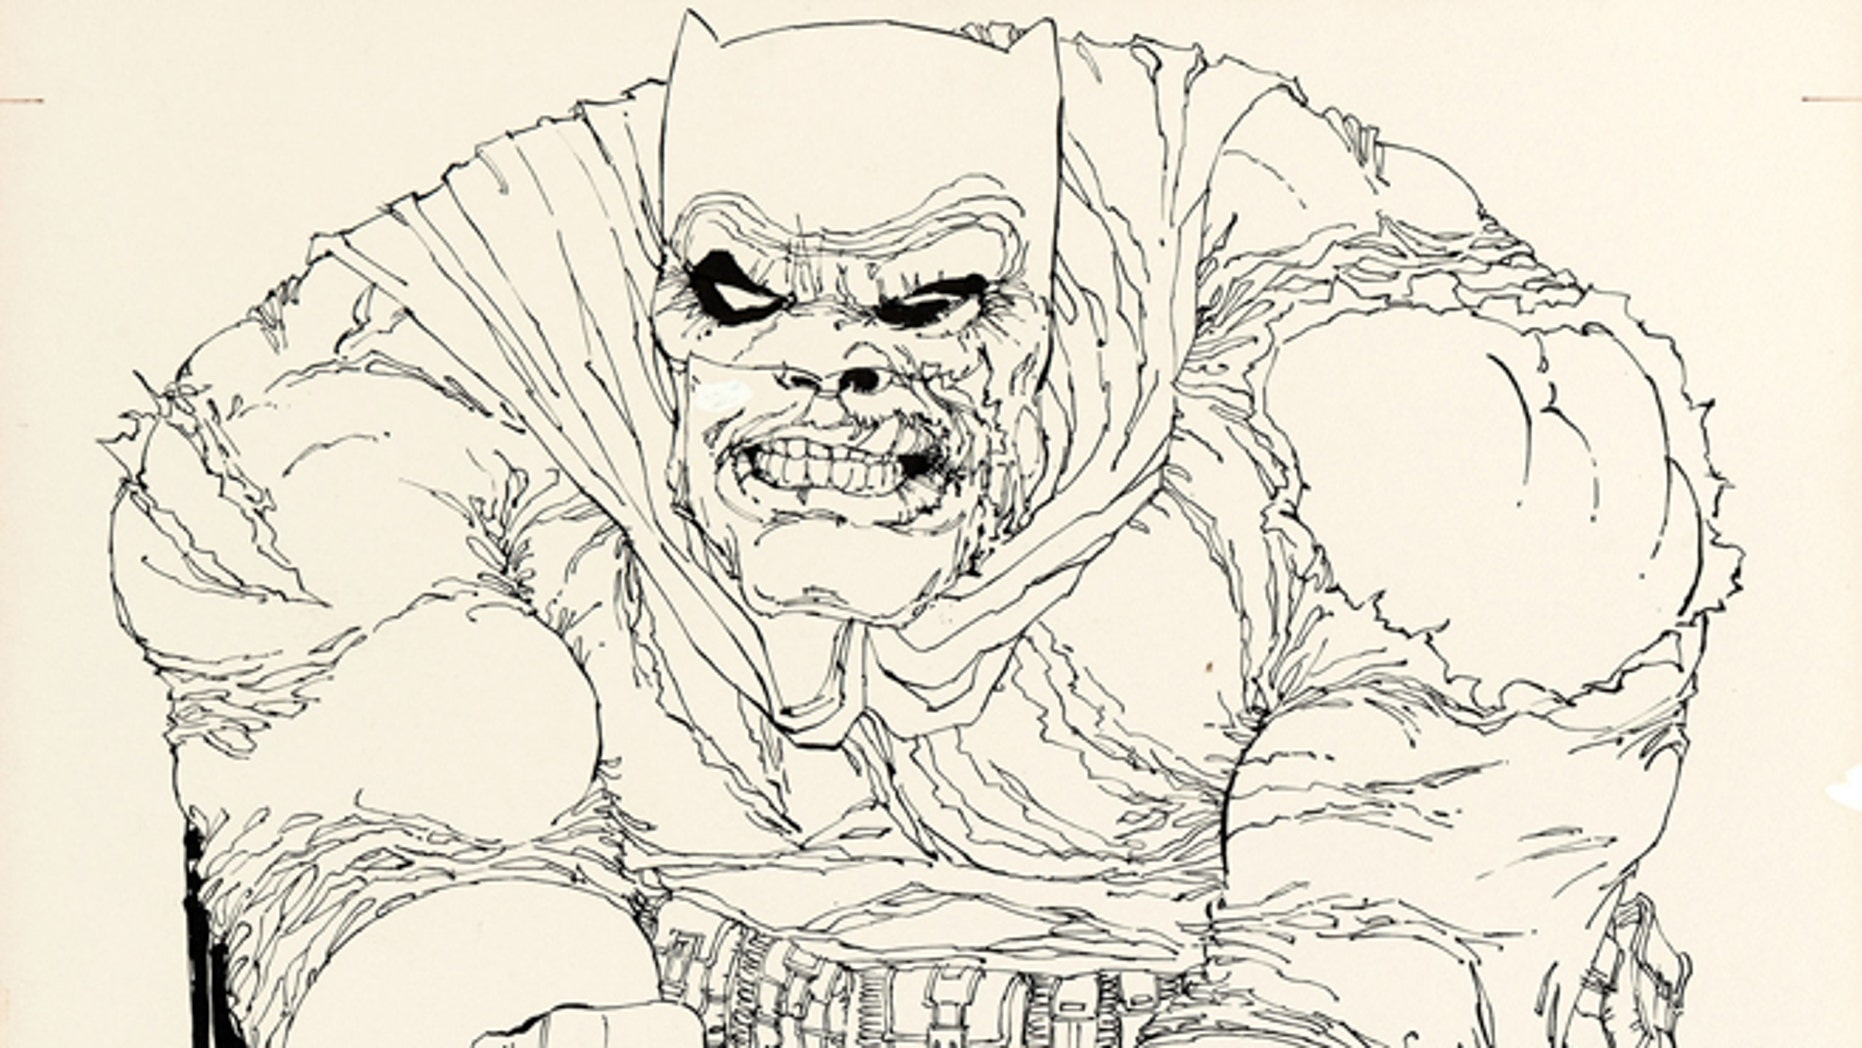 July 2, 2013: This image provided by Heritage Auctions shows the original art drawn by writer/artist Frank Miller for the cover to 'The Dark Knight Returns' No. 2, which is planned to be sold at auction in August 2013. It's the first cover from DC Comics'1986 four-issue 'Dark Knight' miniseries to be sold and is expected to go for more than $500,000. (AP/Heritage Auctions)